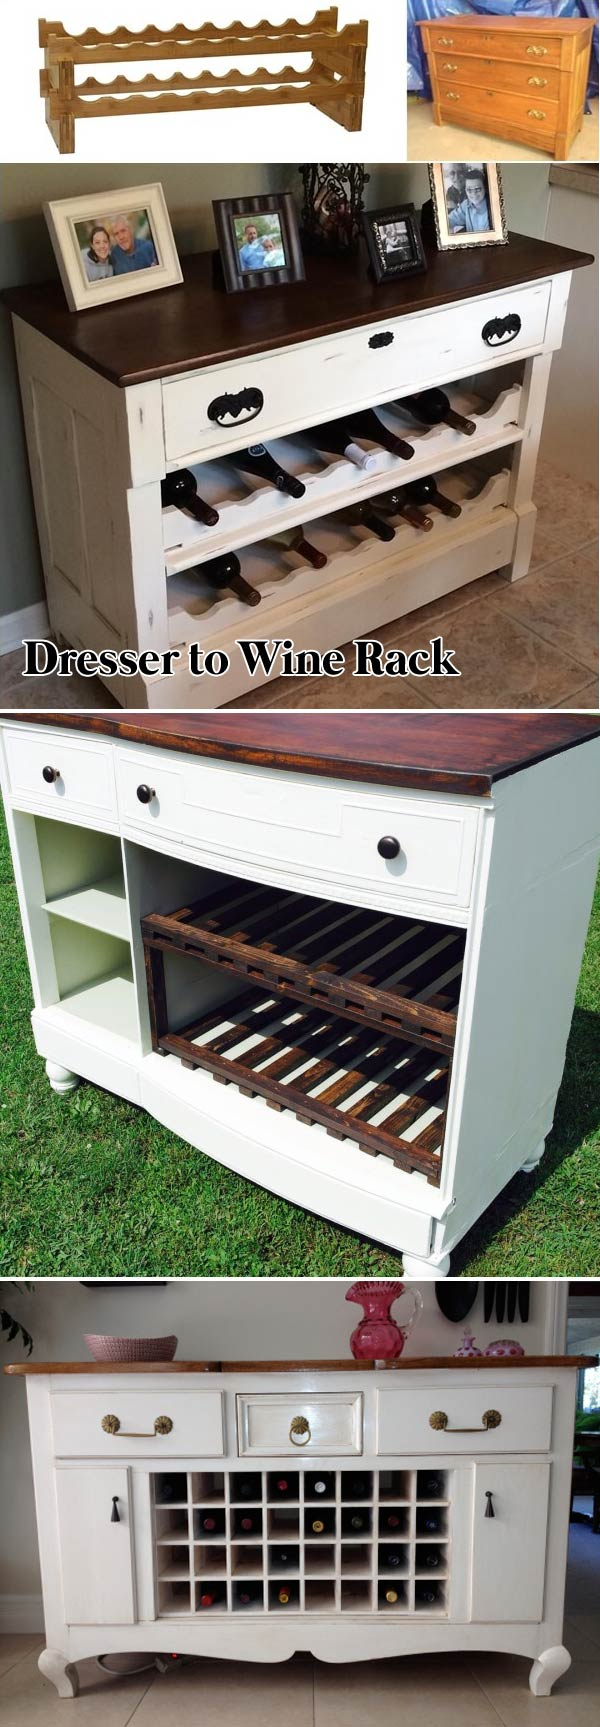 Dresser to Wine Rack